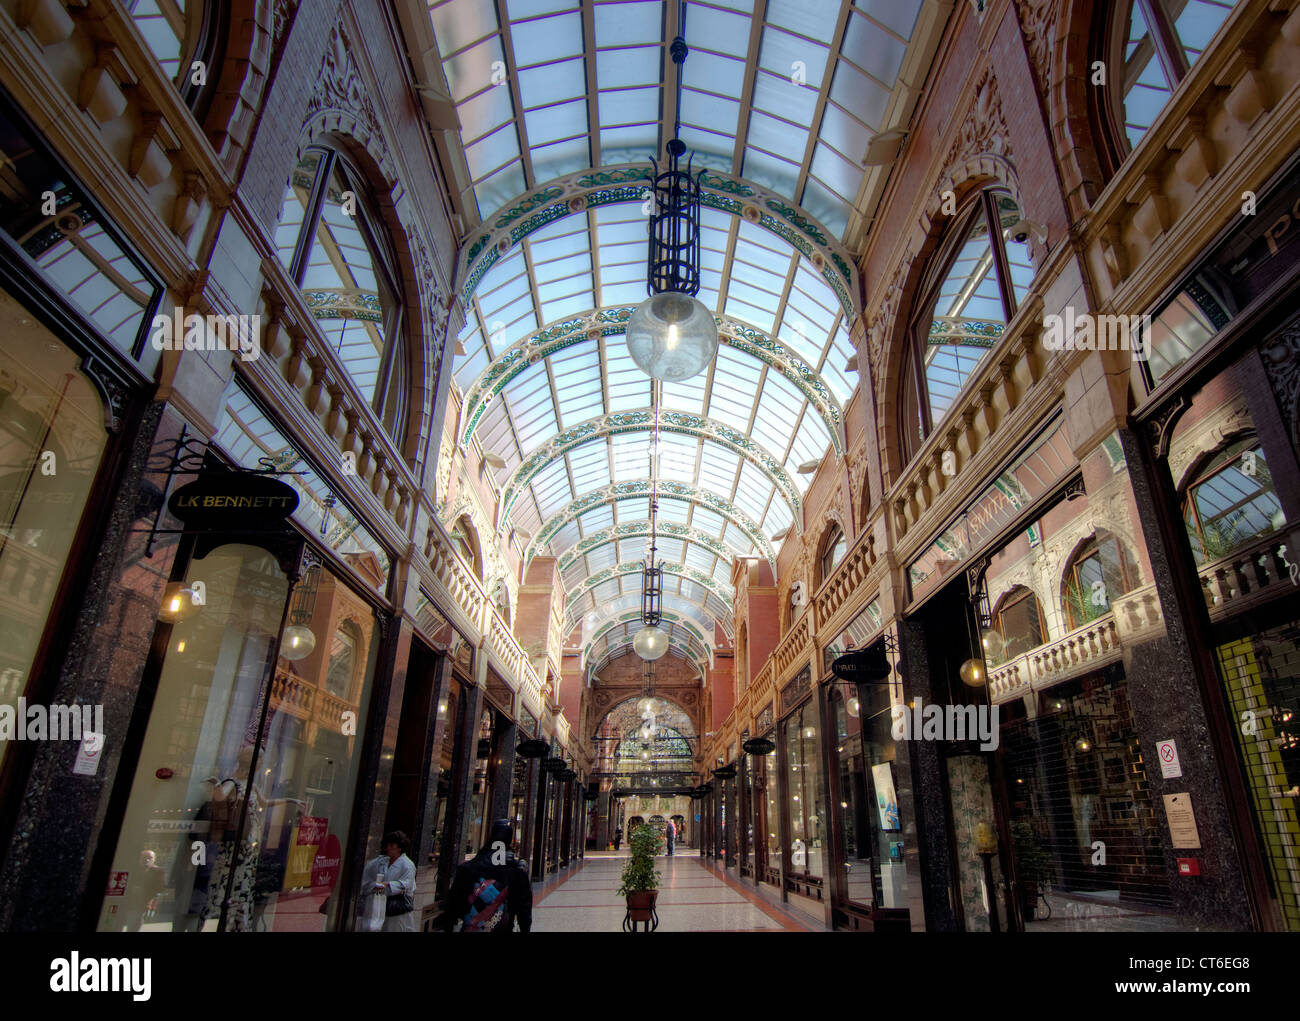 Victoria Quarter shopping Mall in Leeds - Stock Image